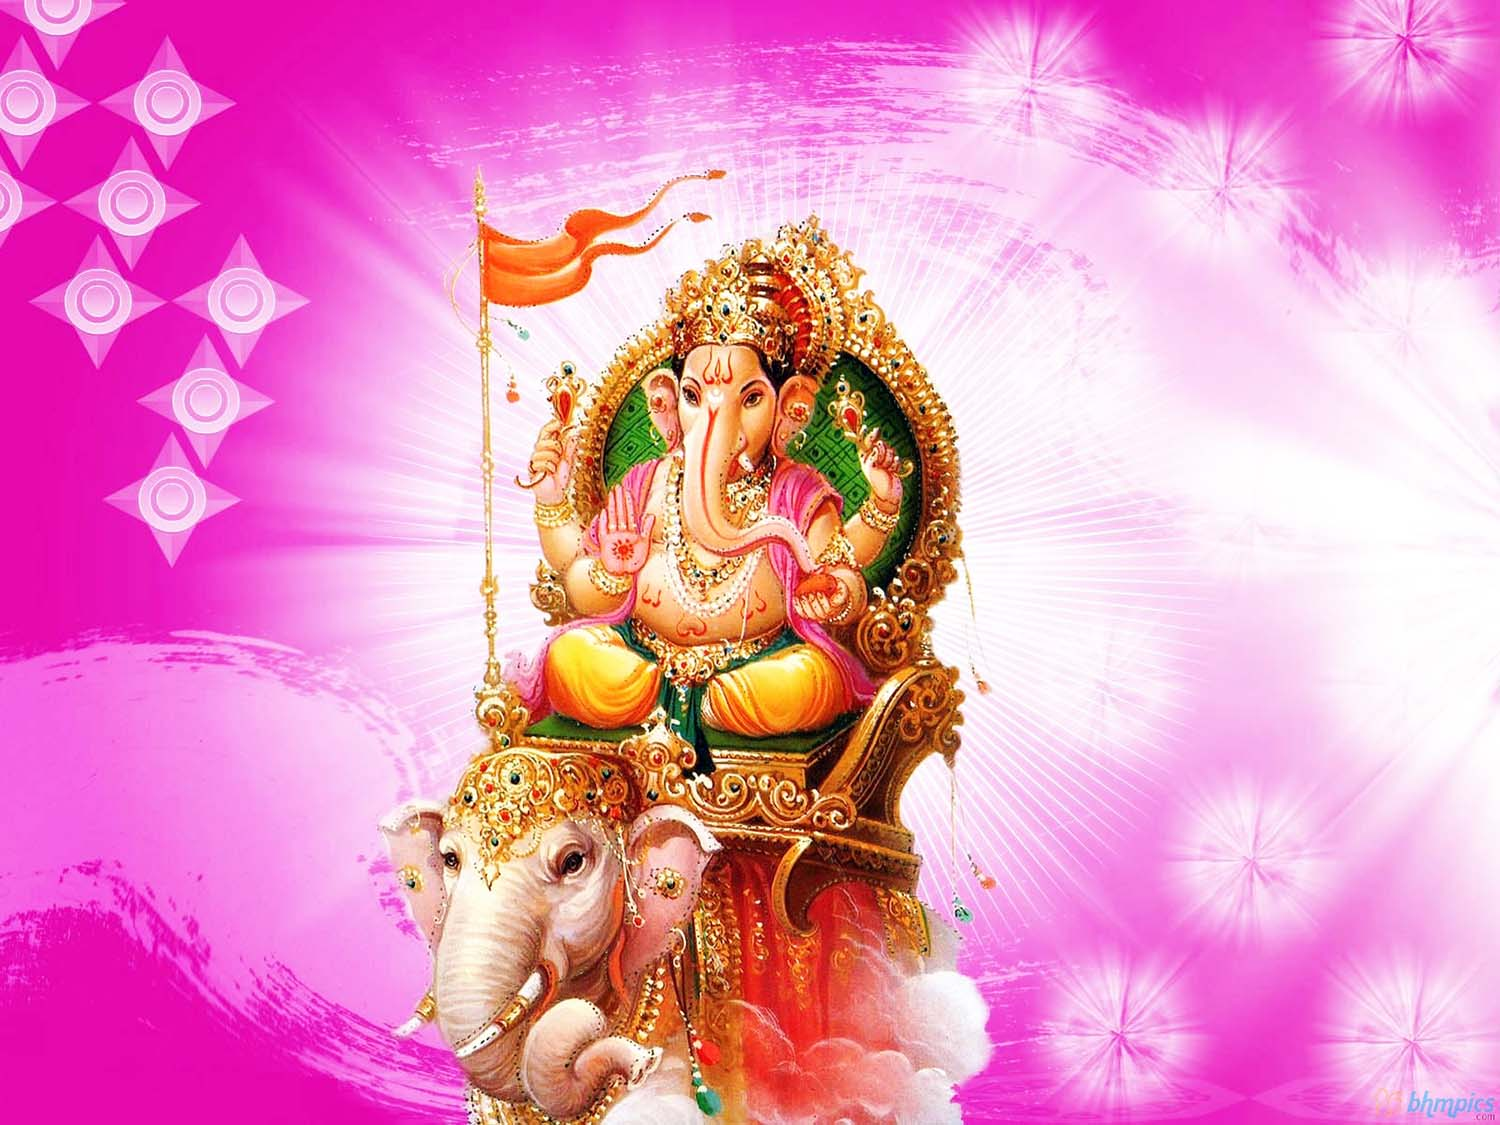 Lord Vinayaka wallpaper riding an elephant!